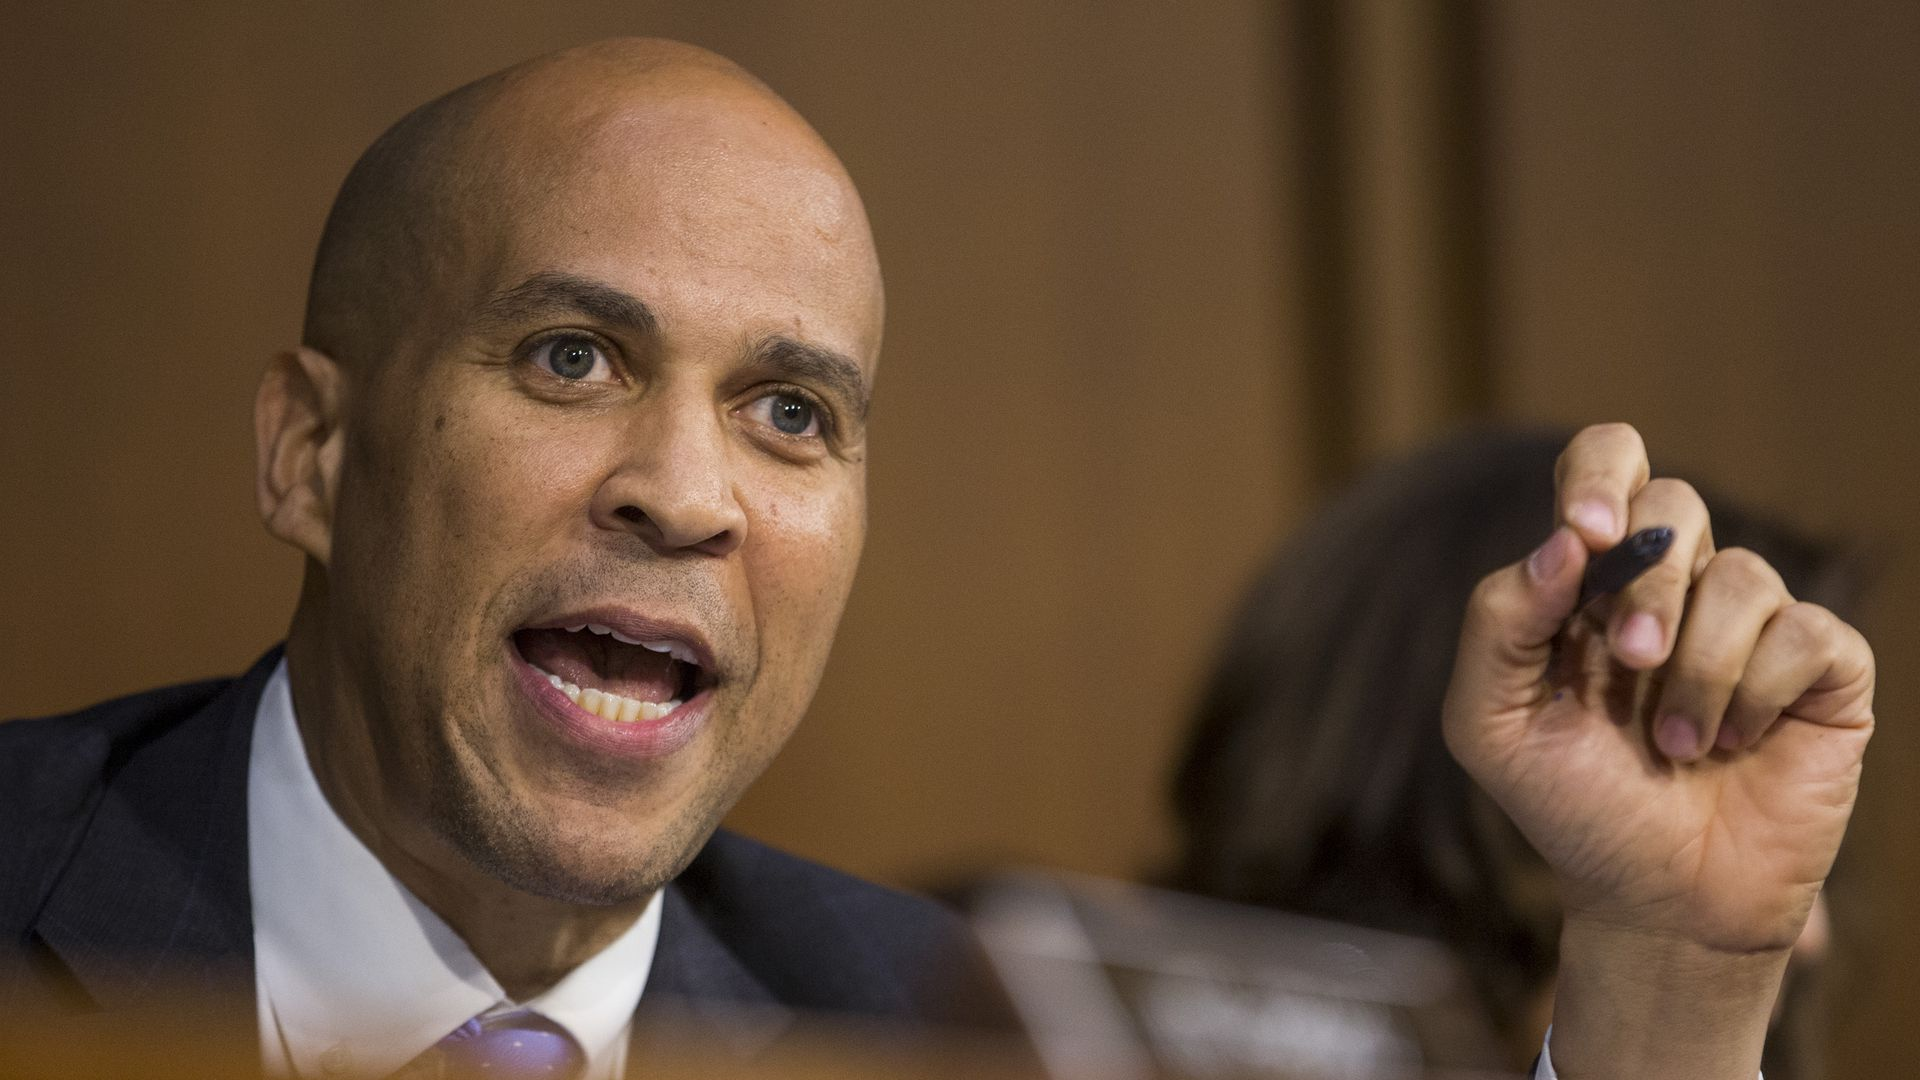 Cory Booker during Brett Kavanaugh's confirmation hearing.